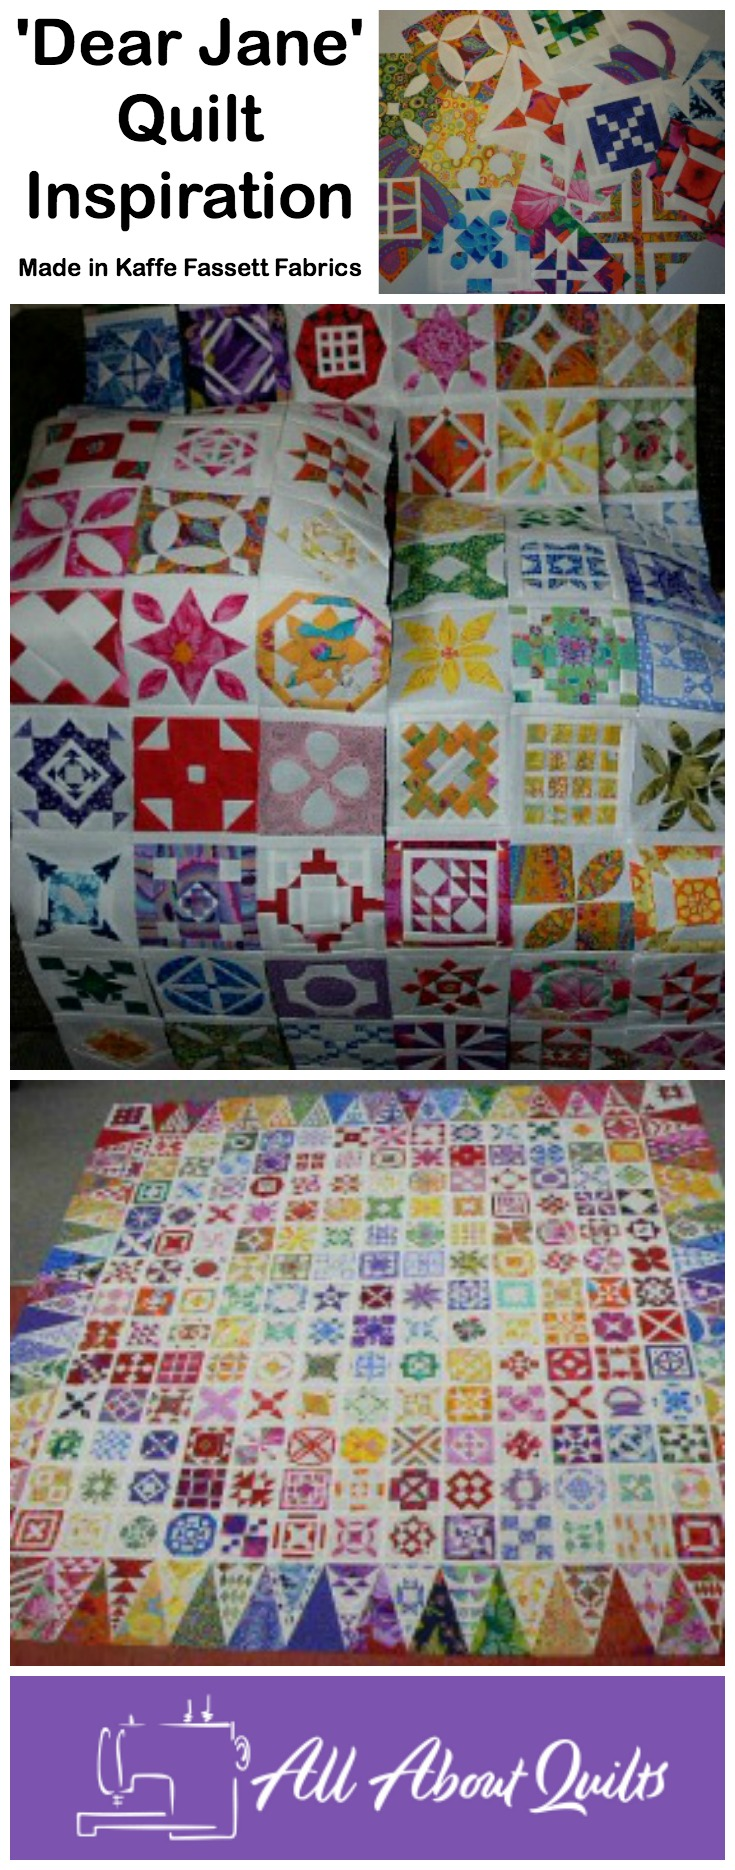 Dear Jane Quilt Pinterest Pin